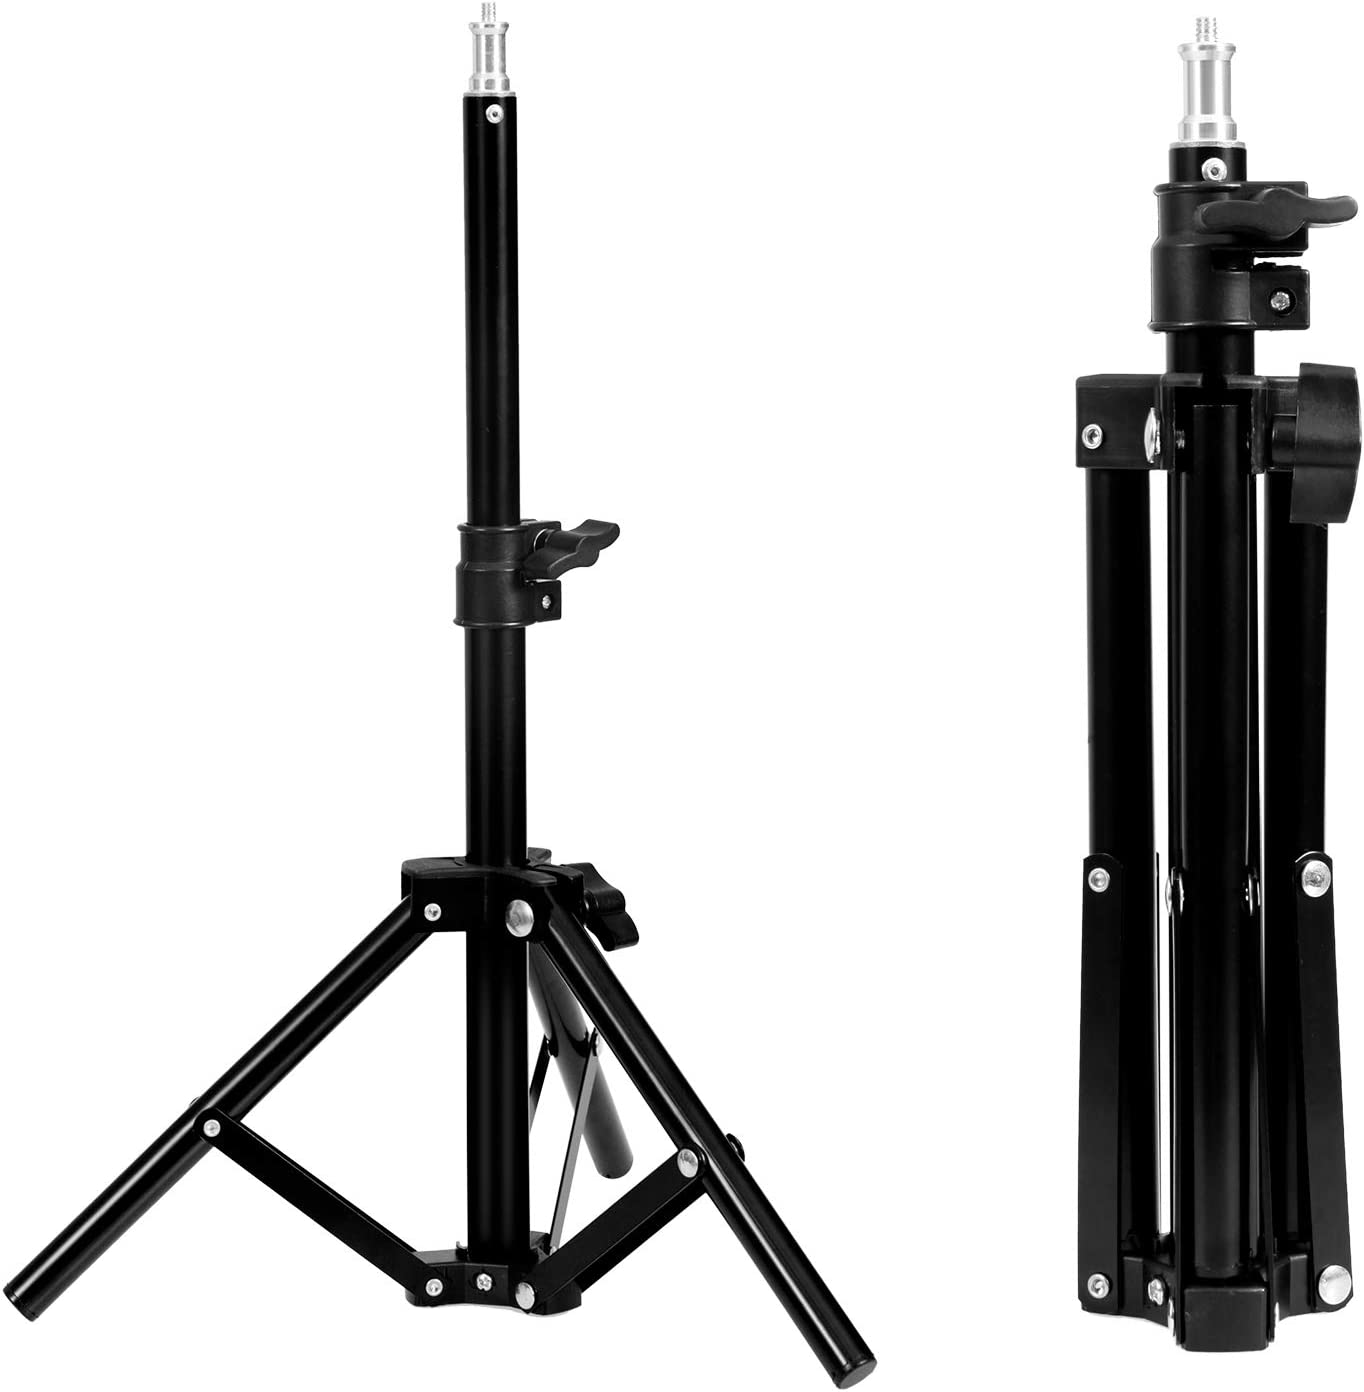 Selens Award Tabletop Light Ranking TOP17 Stand Photography 50 Trip Mini 19.6Inch cm